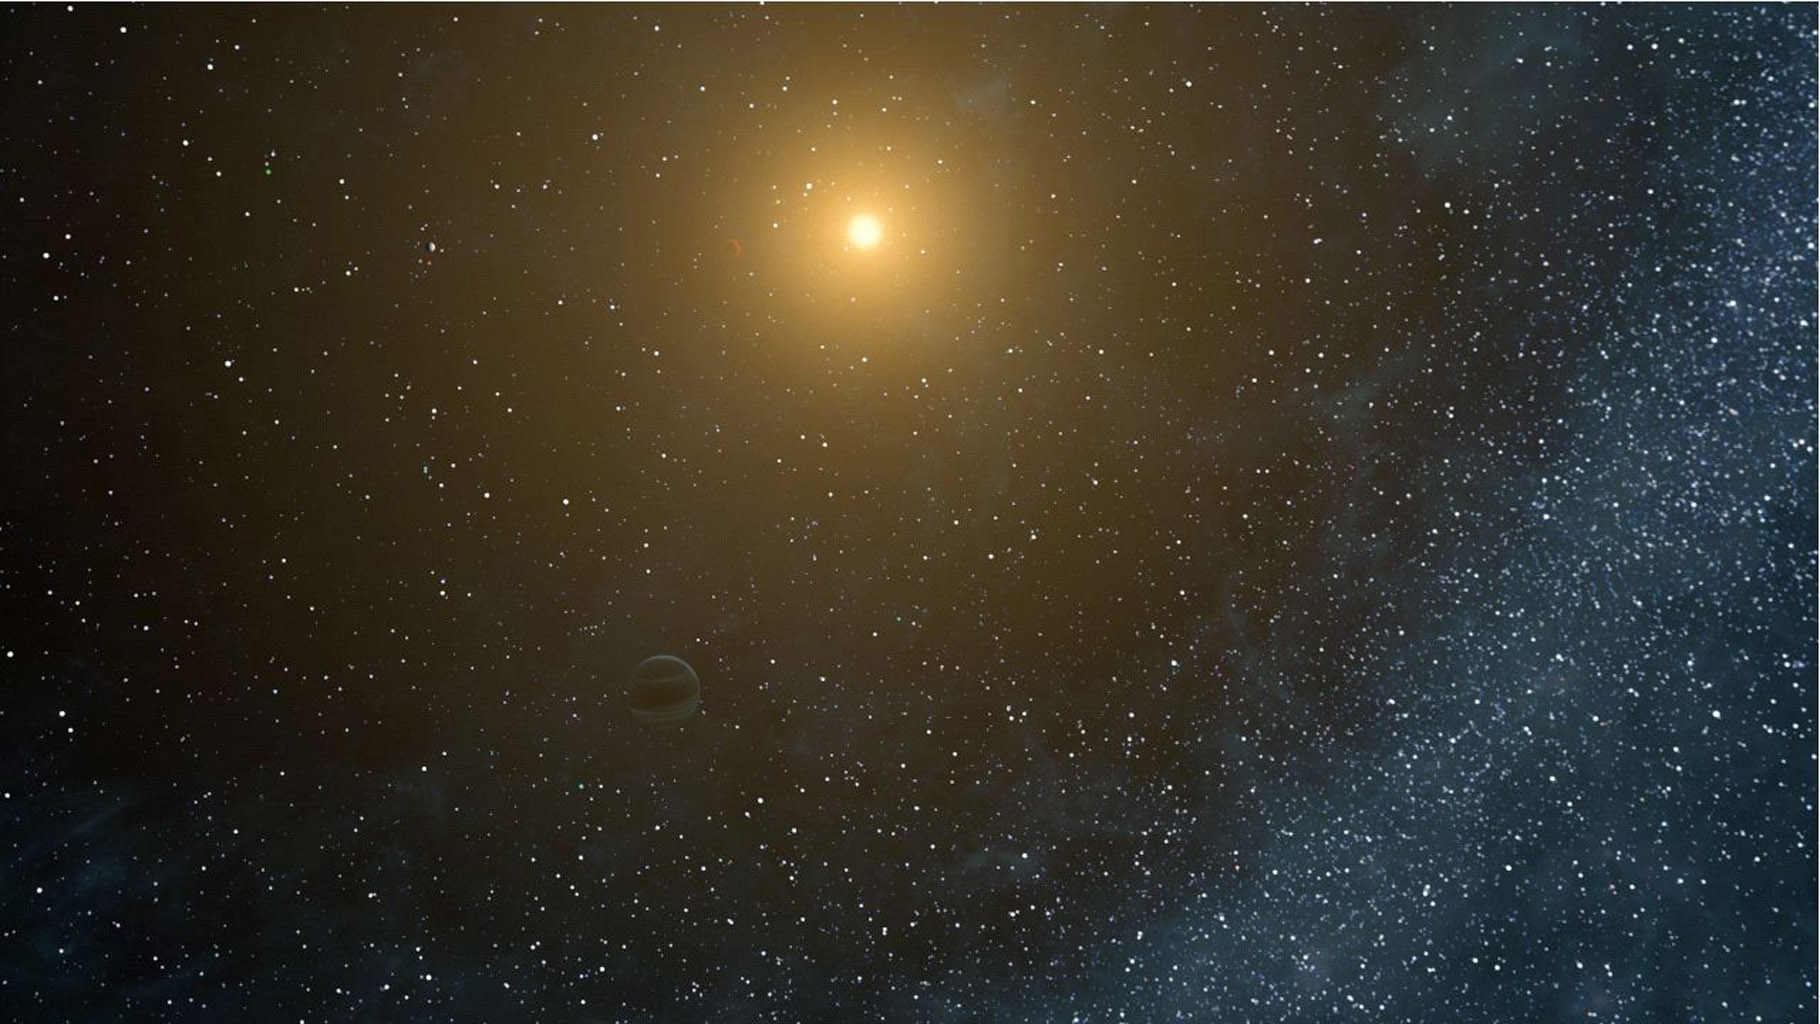 This still from an artist's animation flies through the Kepler-20 star system, where NASA's Kepler mission discovered the first Earth-size planets around a star beyond our own. The system is jam-packed with five planets.